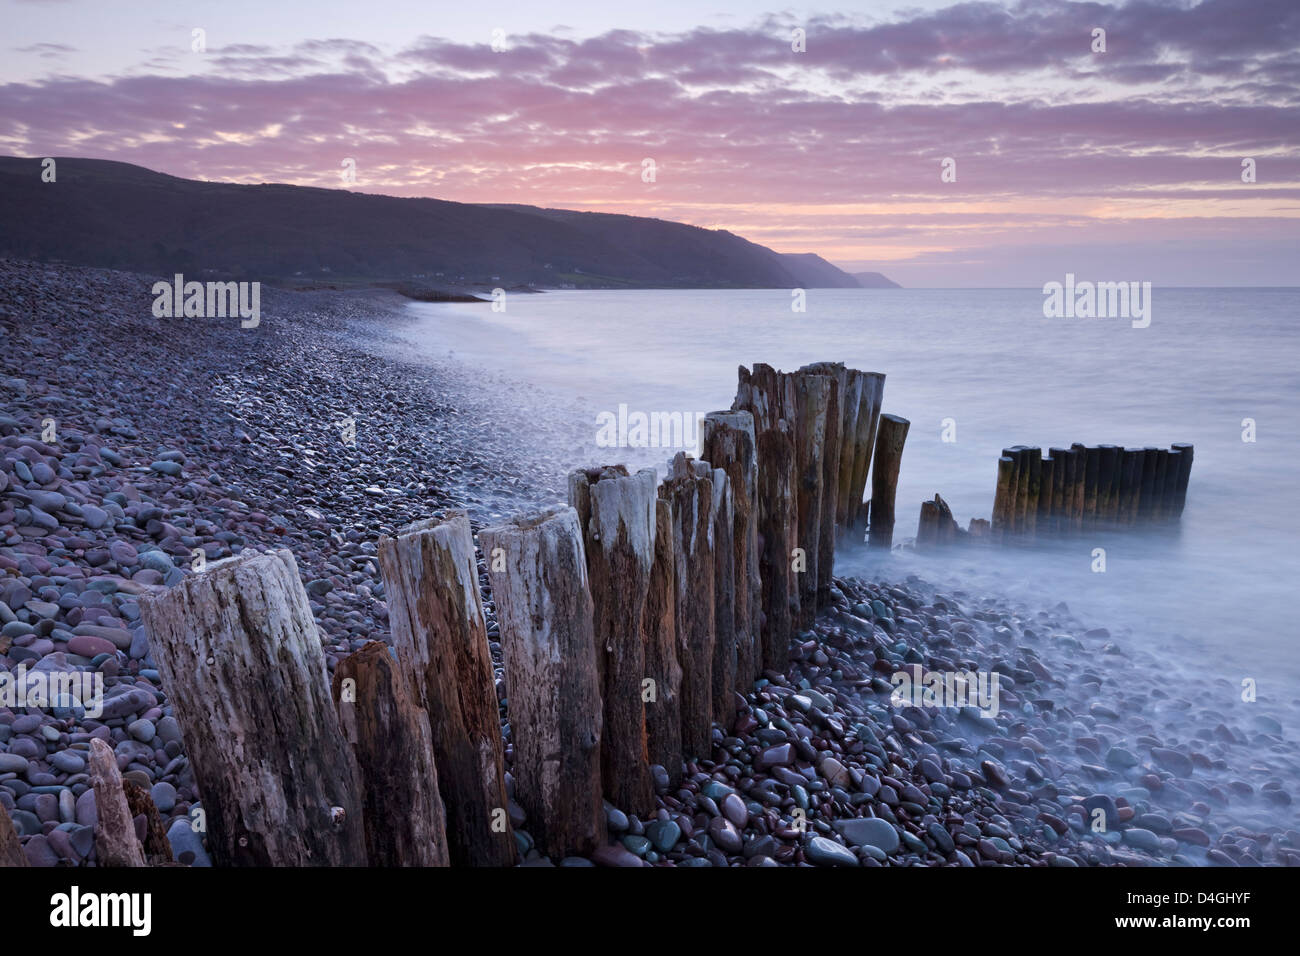 Wooden groyne on Bossington Beach, Exmoor, Somerset. Winter (March) 2012. - Stock Image